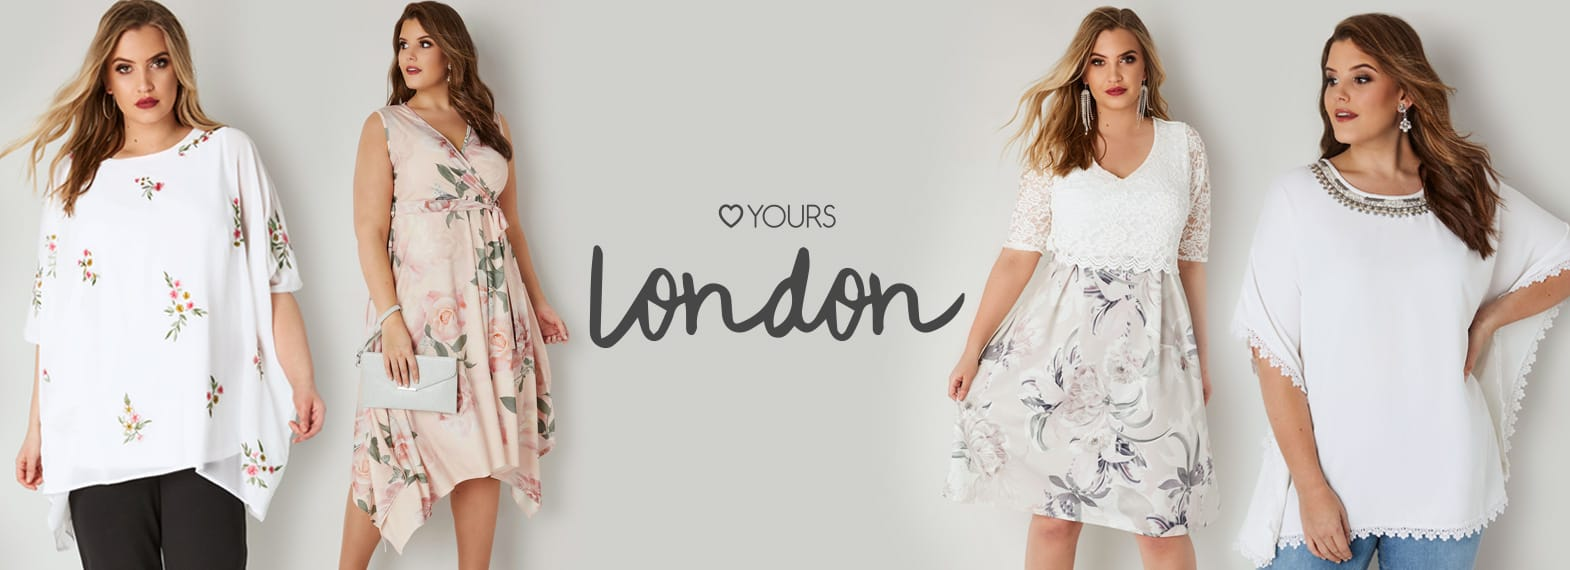 london clothing